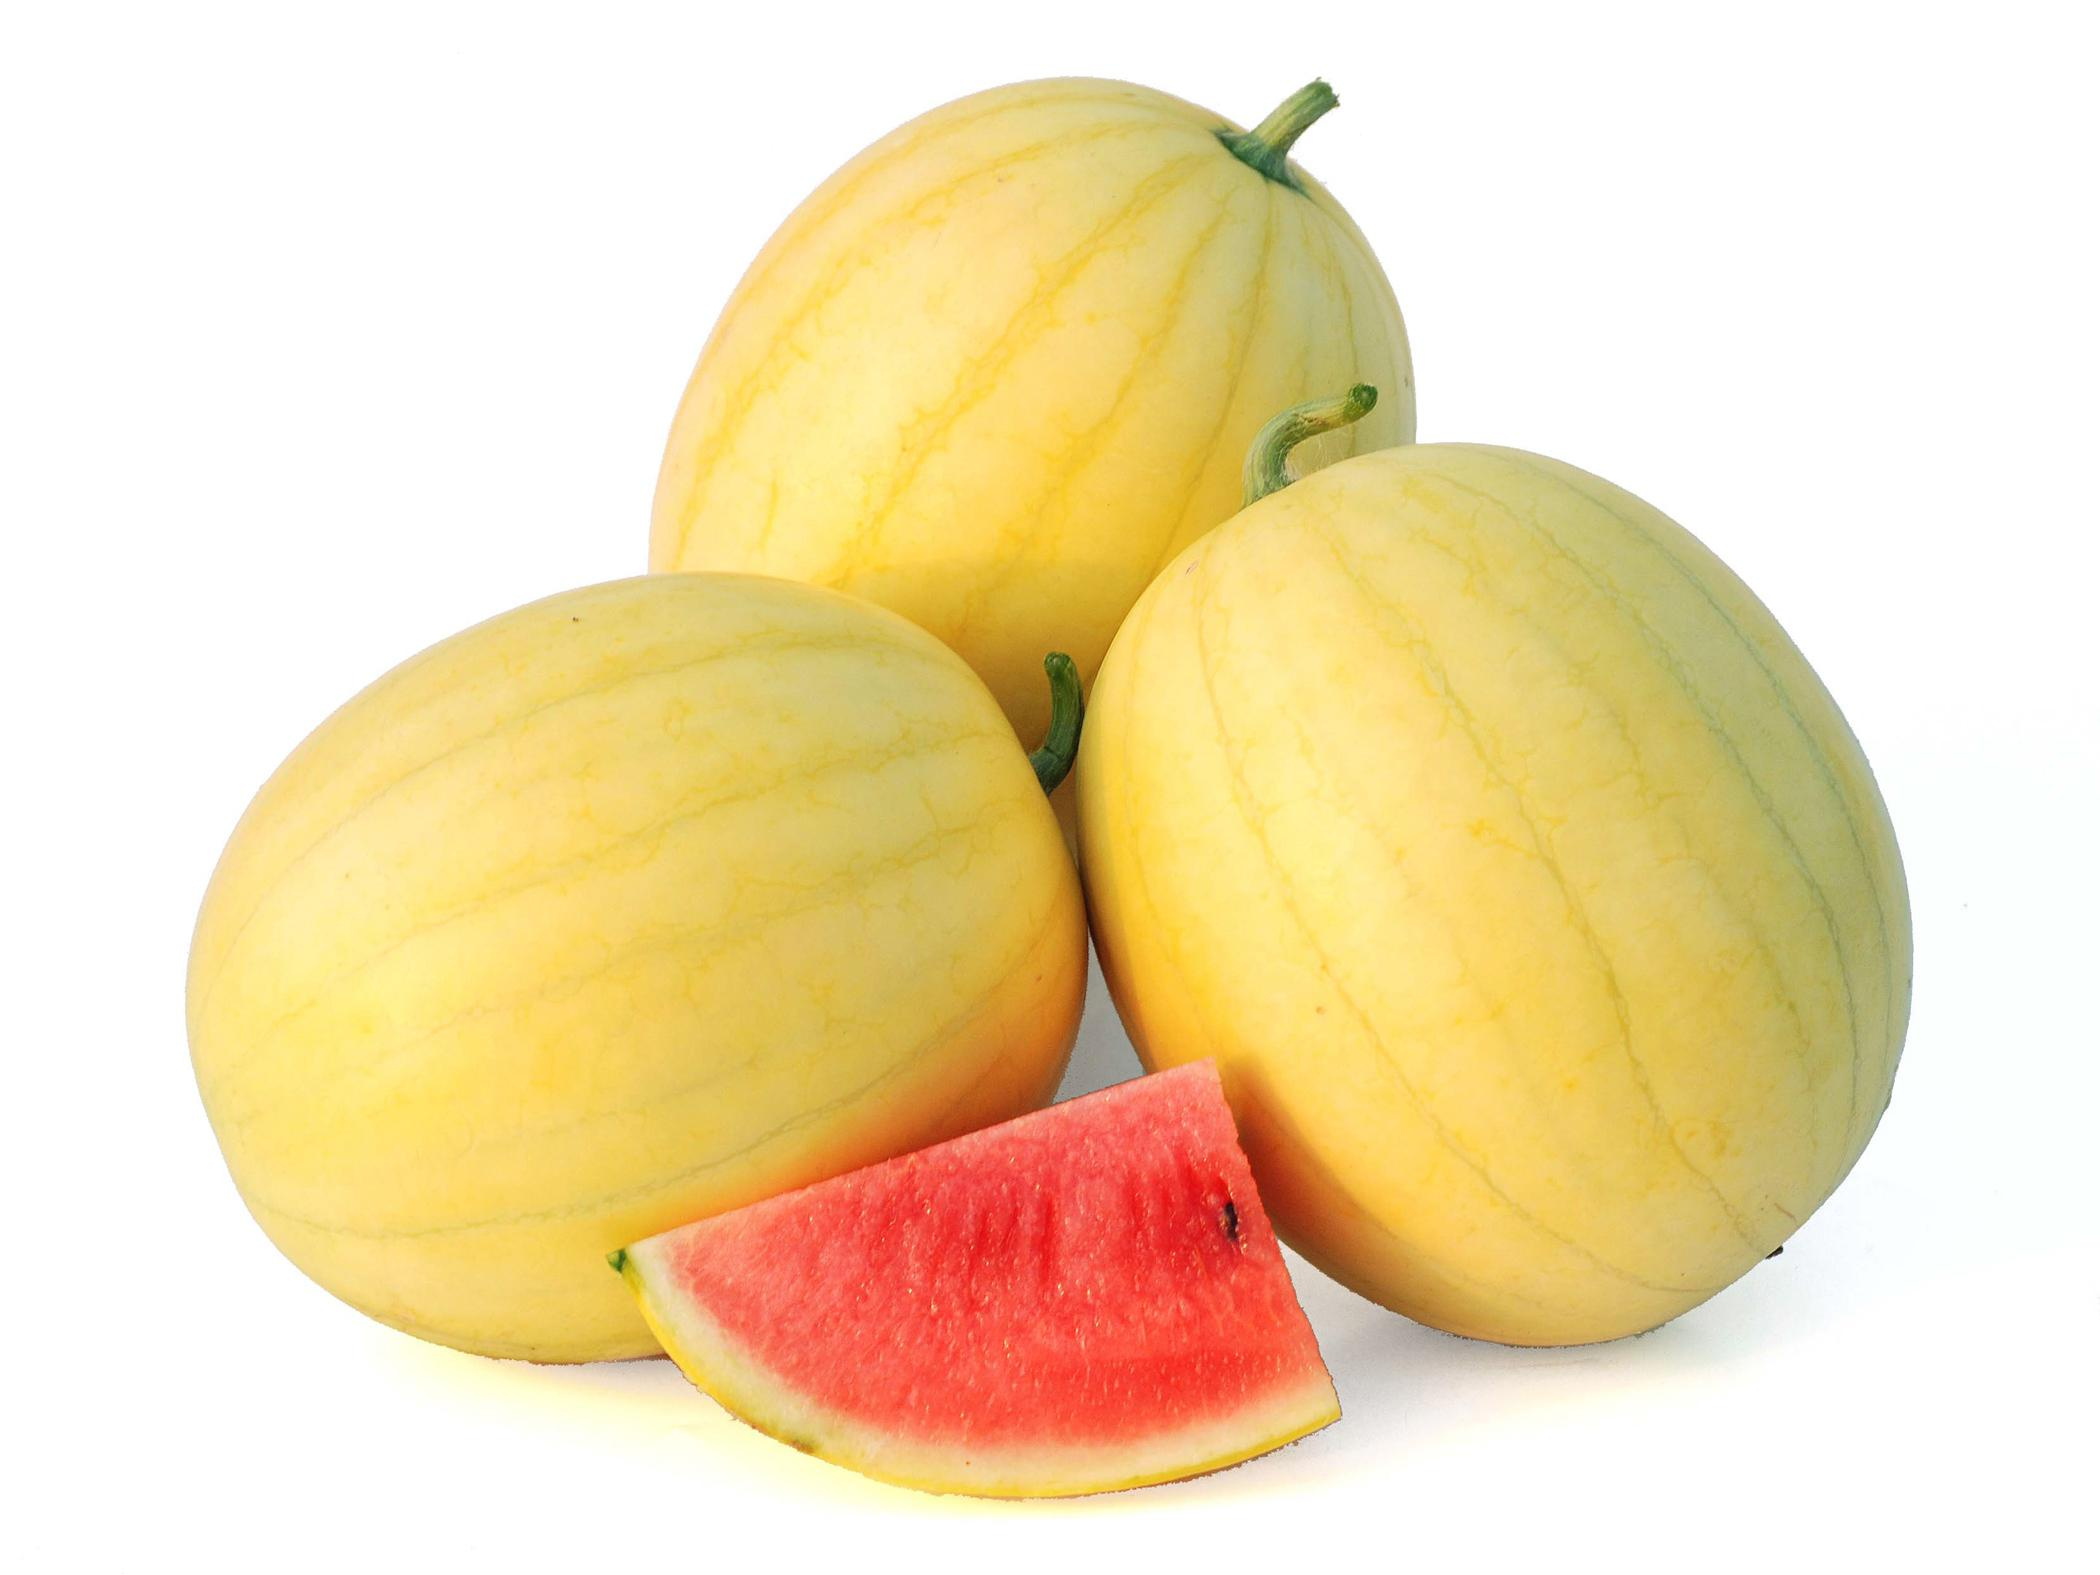 """The non-traditional """"Faerie"""" F1 watermelon, with its yellow rind and sweet, red flesh, is a 2012 All-America Selection Vegetable Award winner. (Photo courtesy of All-America Selections)"""